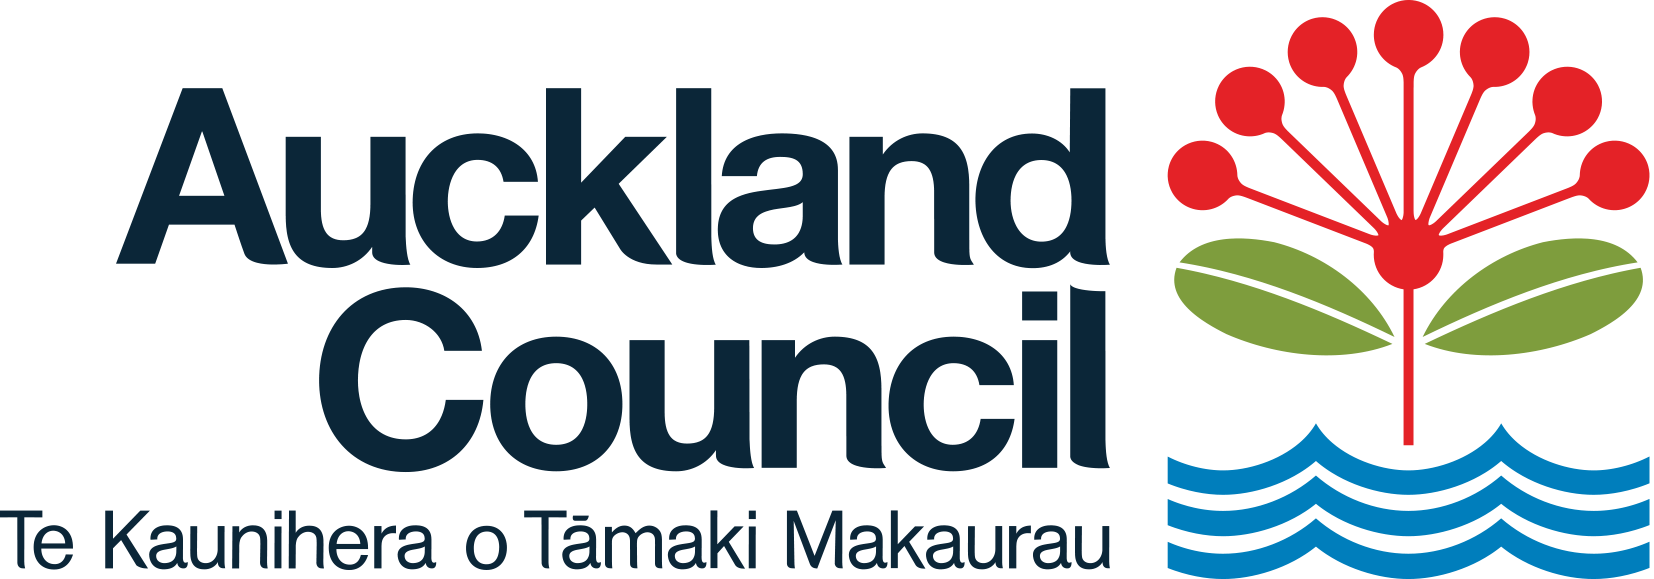 Auckland Council_logo